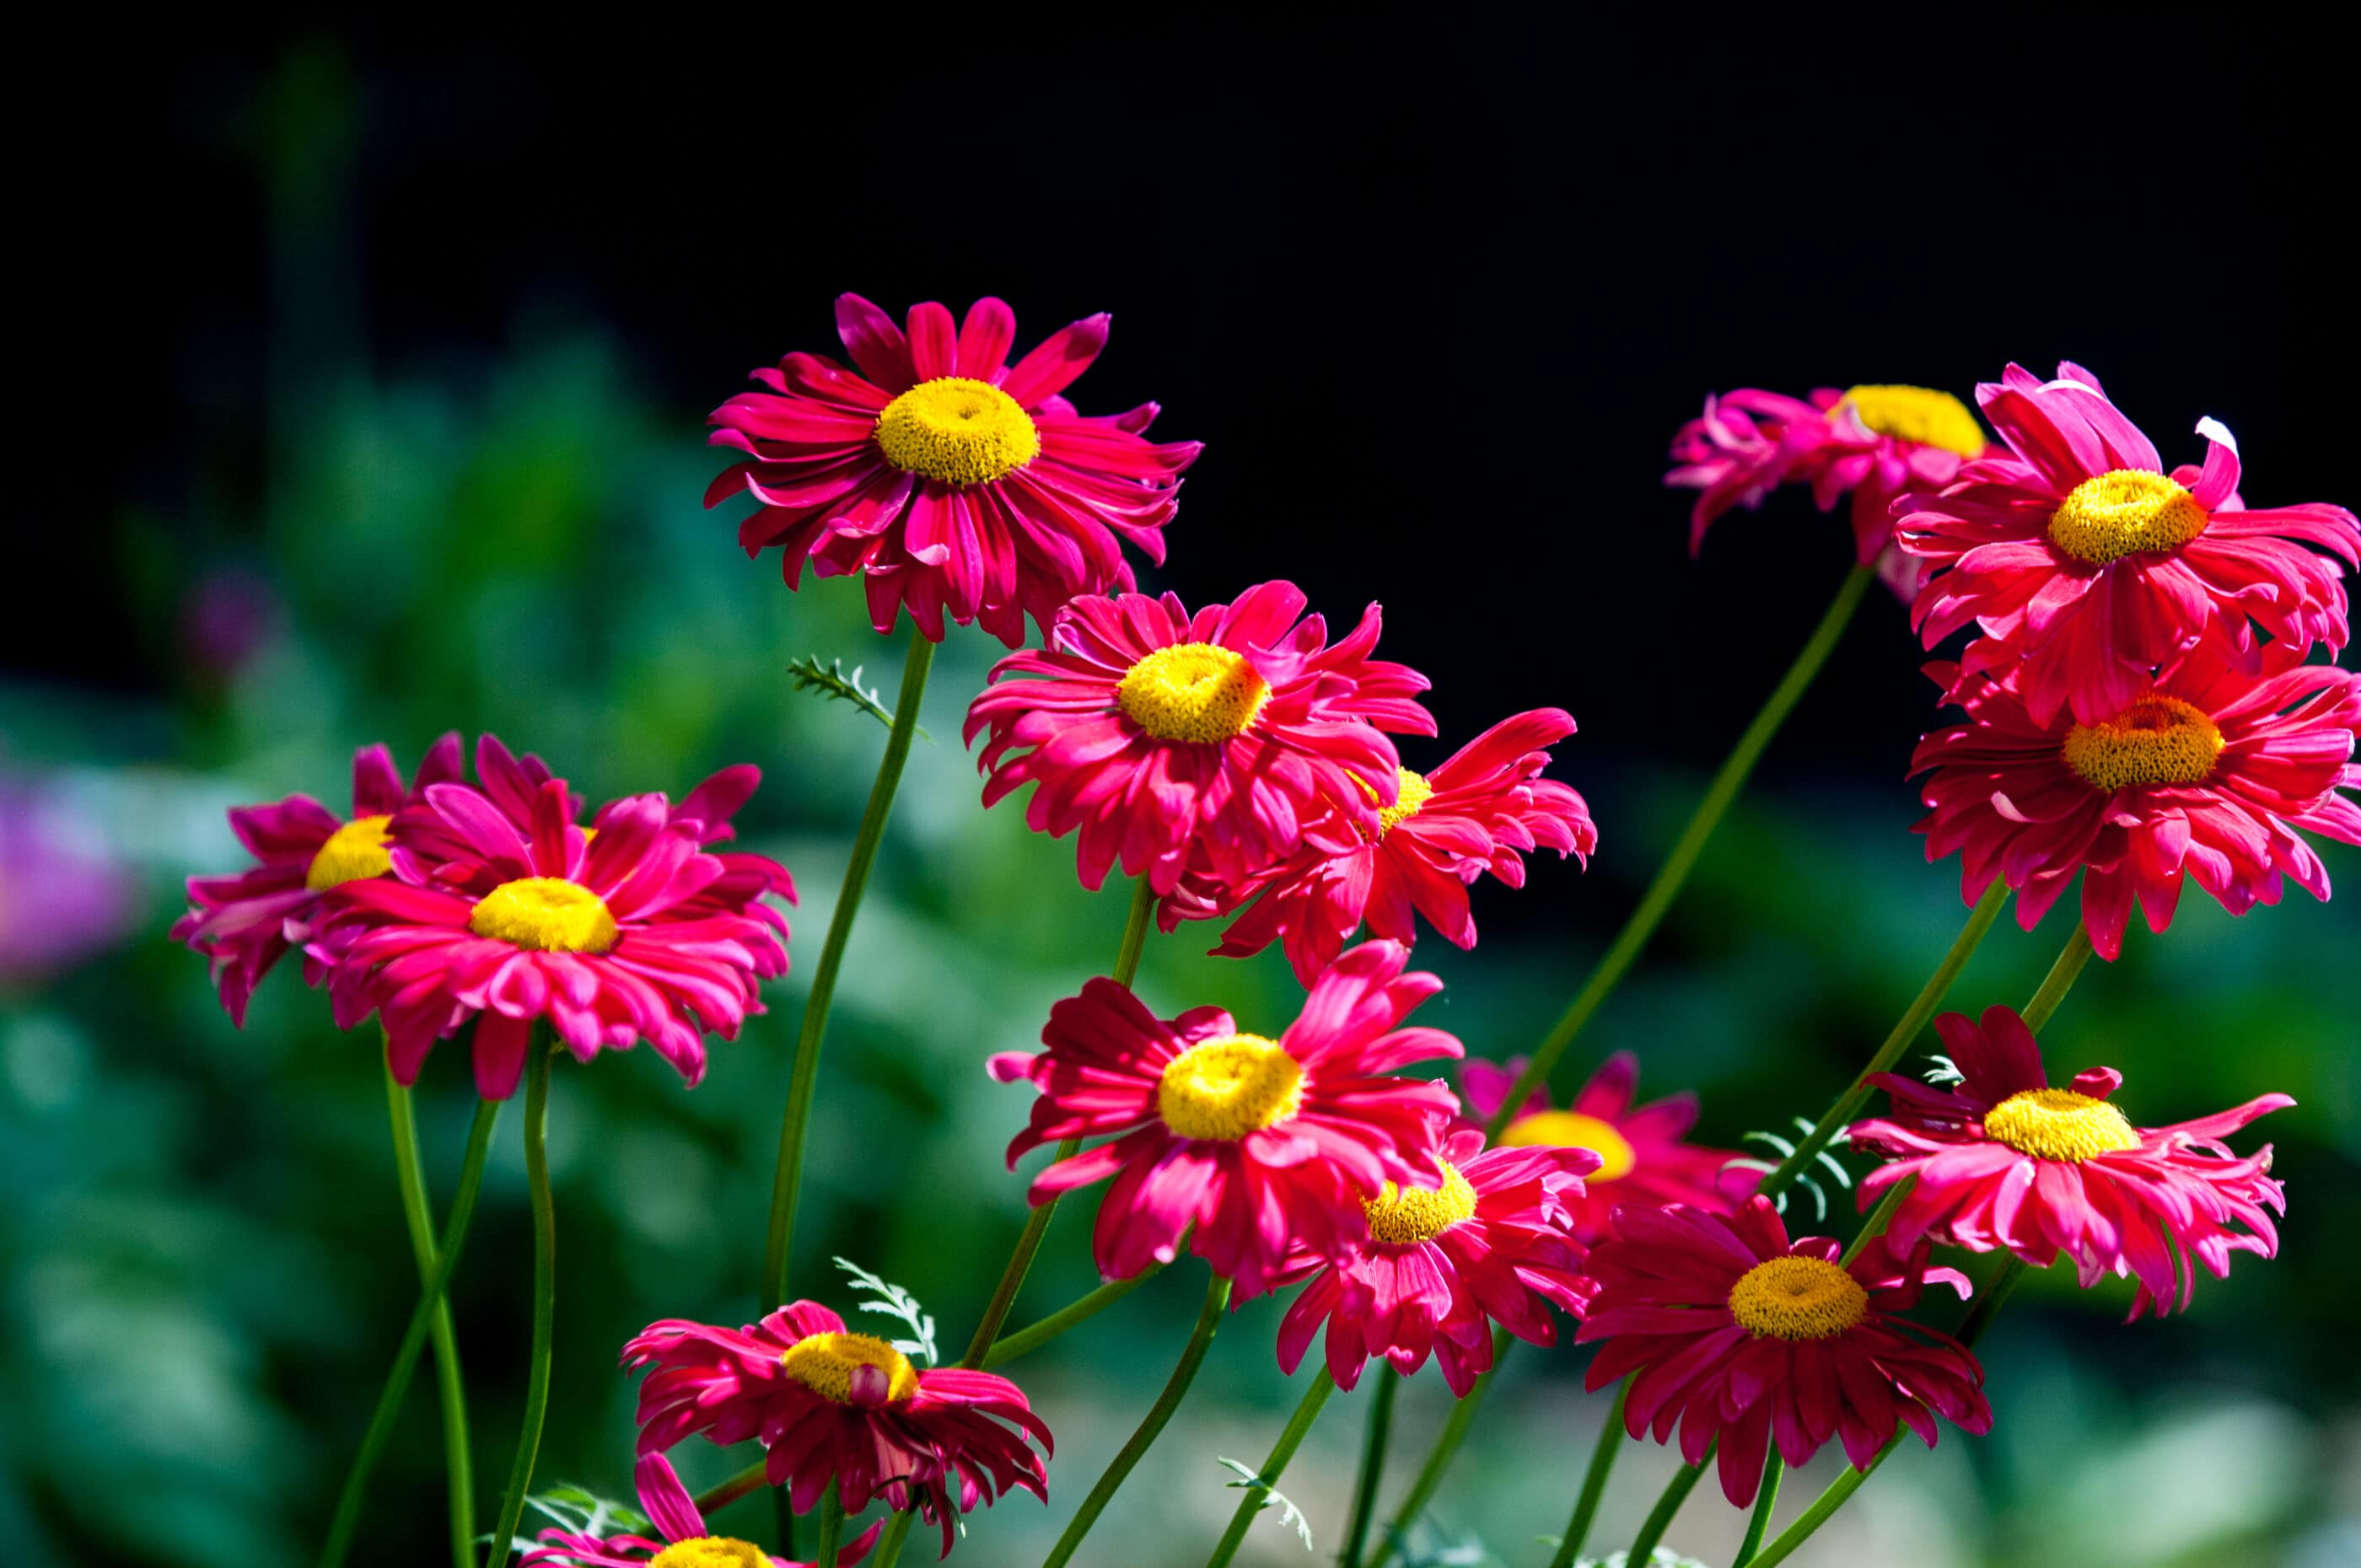 A group of Pyrethrum Daisies growing in a garden